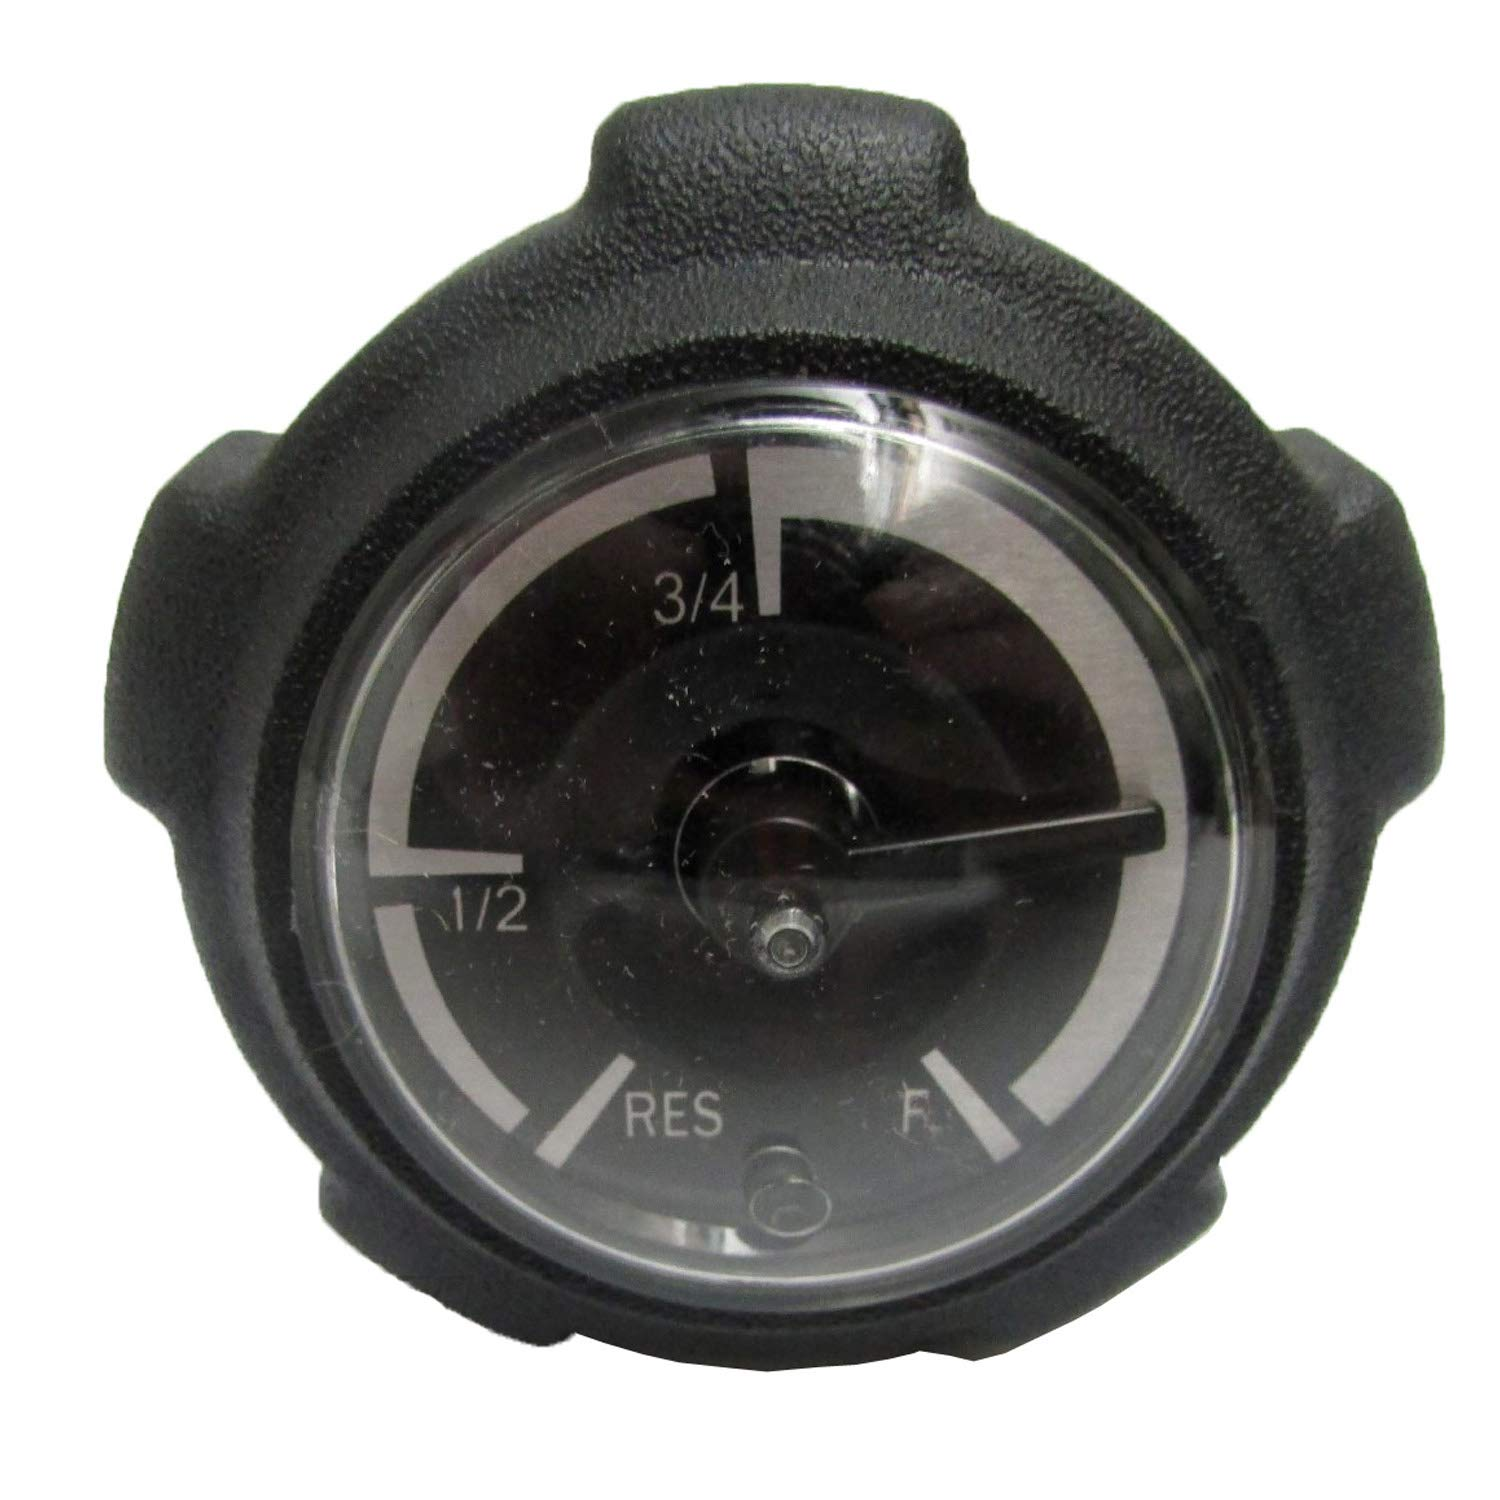 2871441 Polaris Scrambler 500 Fuel Gauge Cap